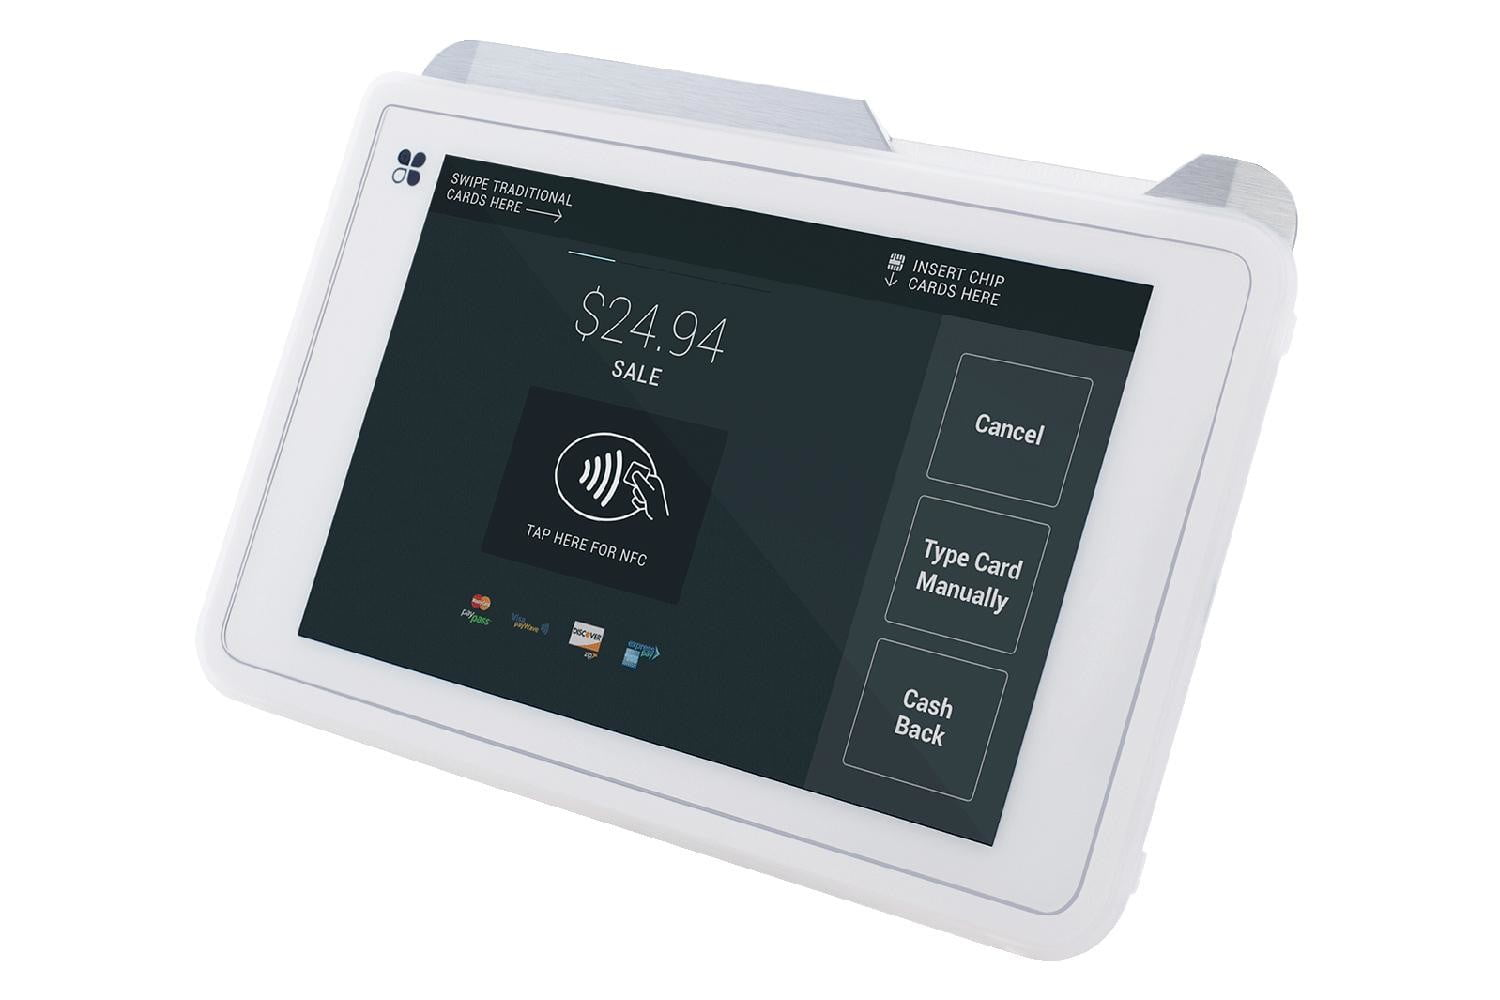 mobile payments are coming heres how theyll work clover hardware